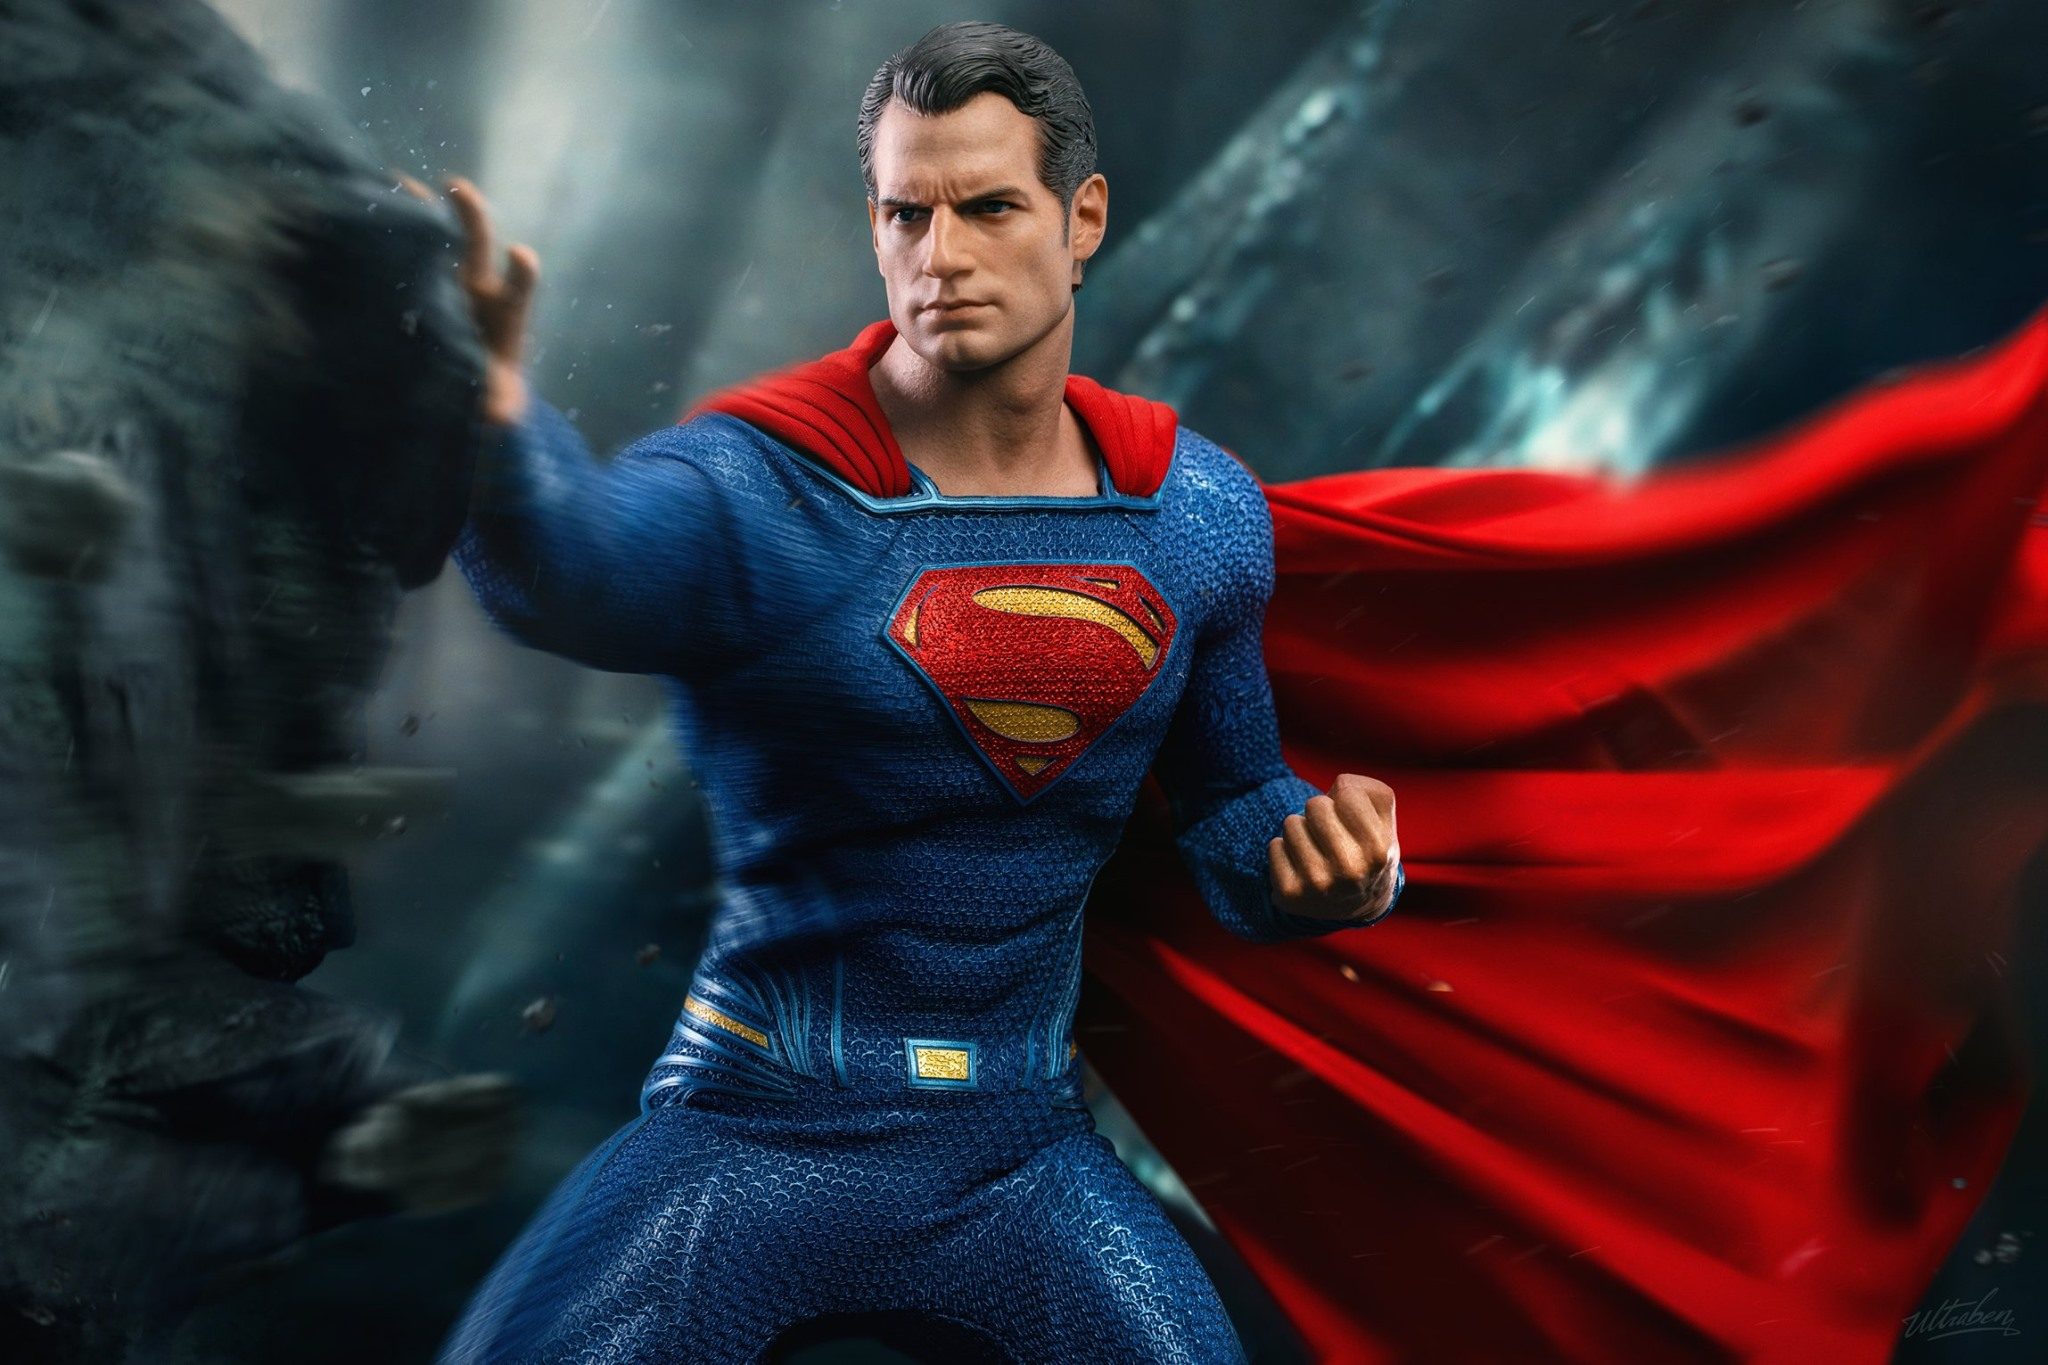 Hot Toys Justice League 1/6th Scale Superman Collectible Figure